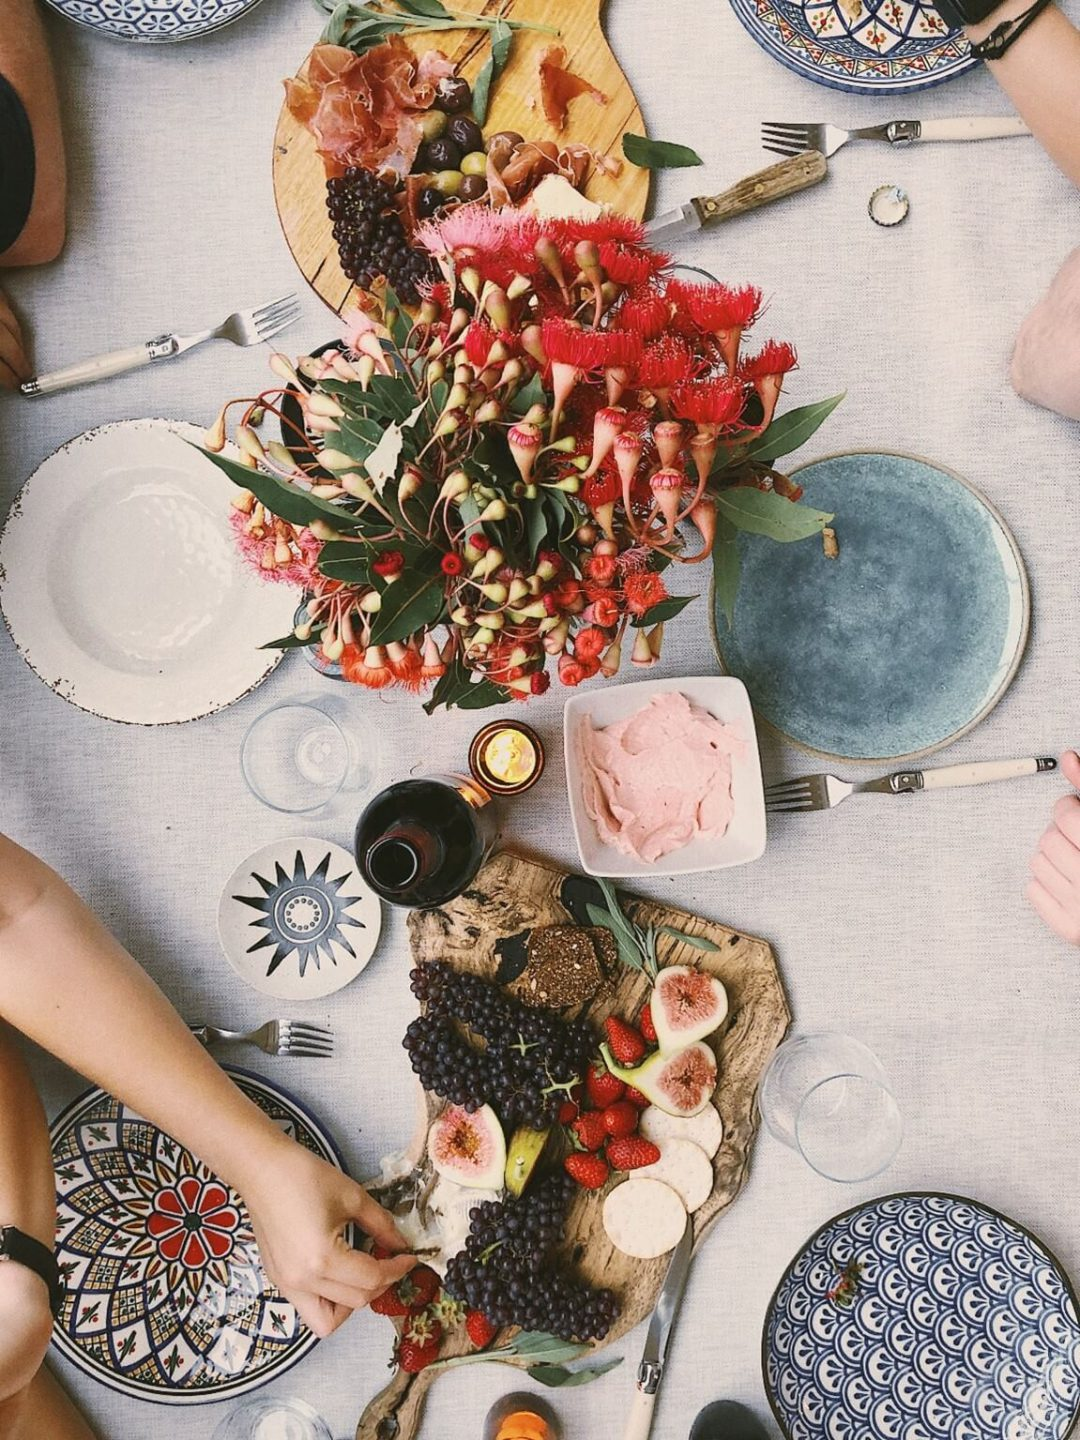 Parisian Christmas styling: an overhead photo of a table setting with cutlery, plates and food